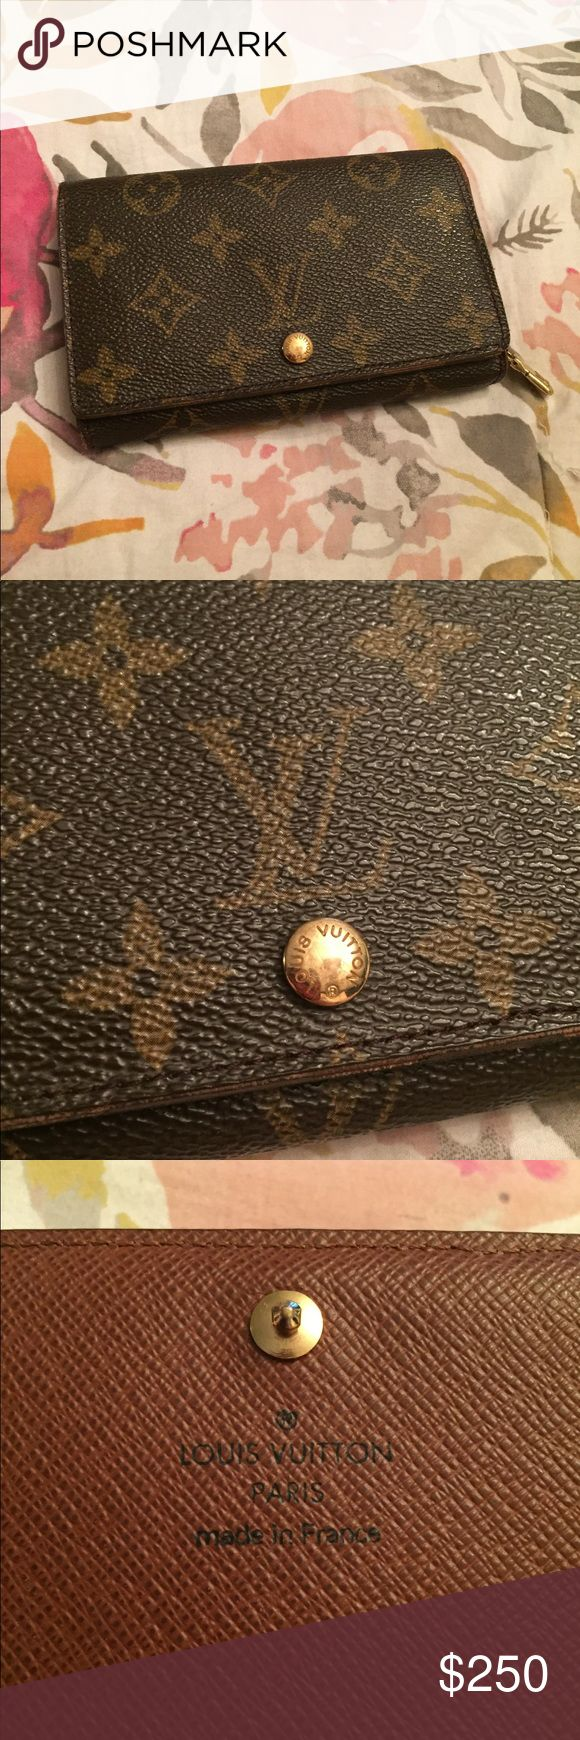 💯 authentic Louis Vuitton vintage snap wallet Lovely wallet that's great for staying organized. Guaranteed authentic! Lots of life left, with signs of wear overall as shown, including peeking in interior of zip pocket. but this doesn't effect use. See photos- great piece at a great price! Louis Vuitton Bags Wallets